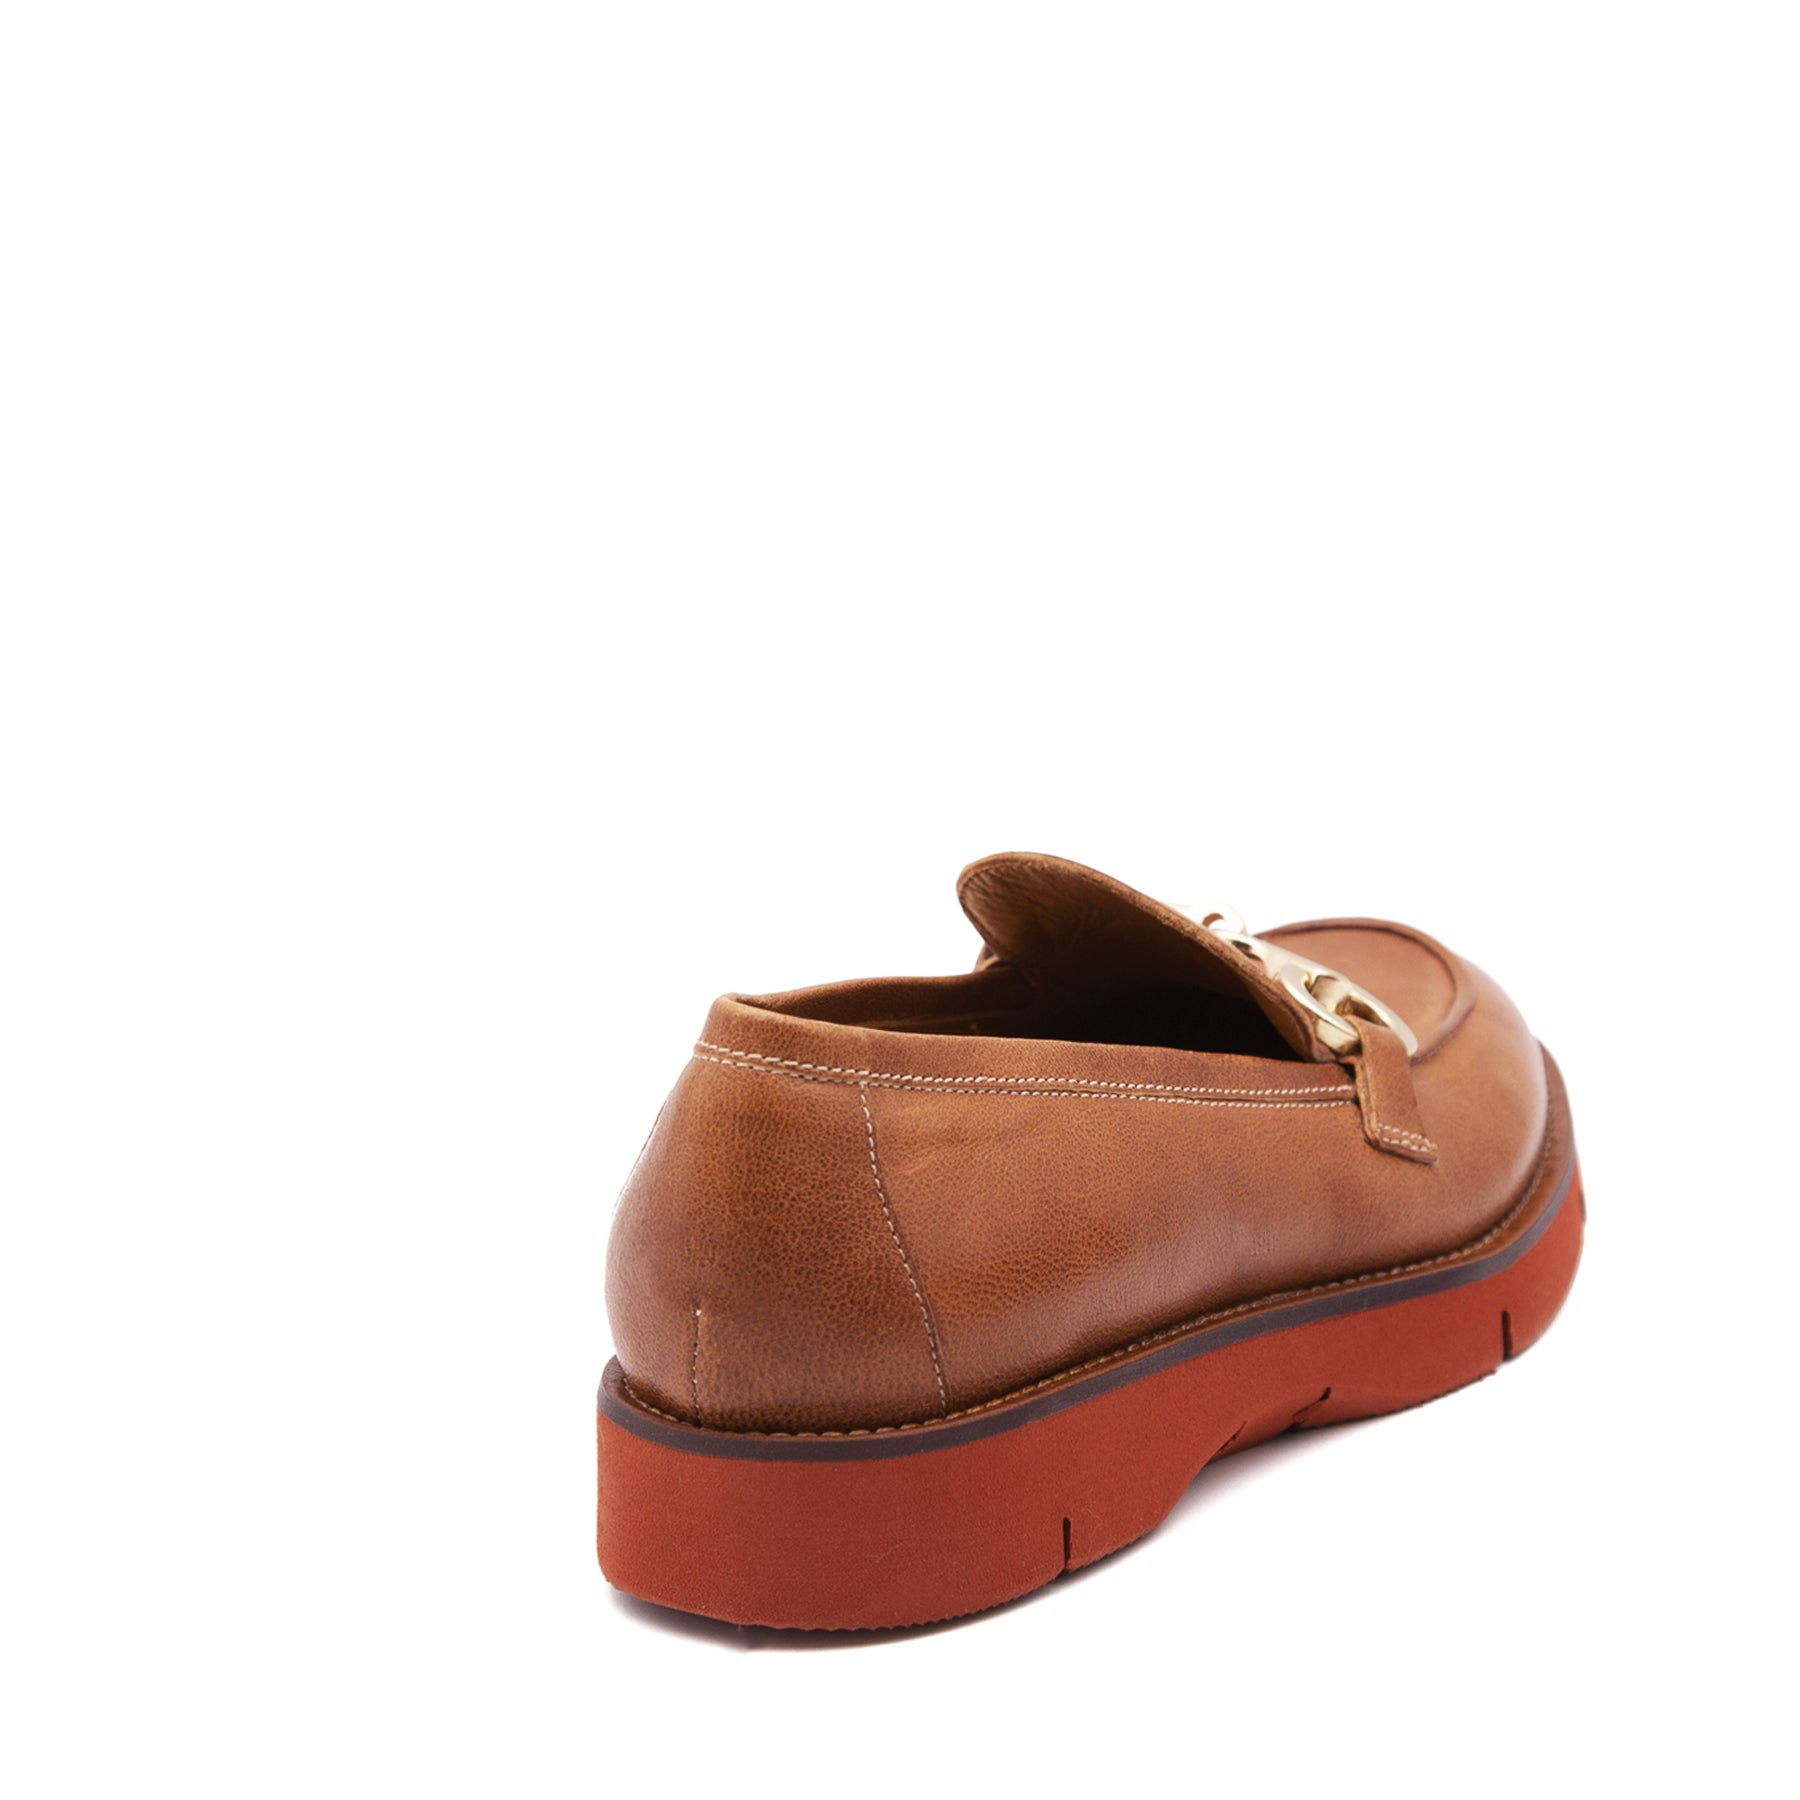 Navy blue loafers